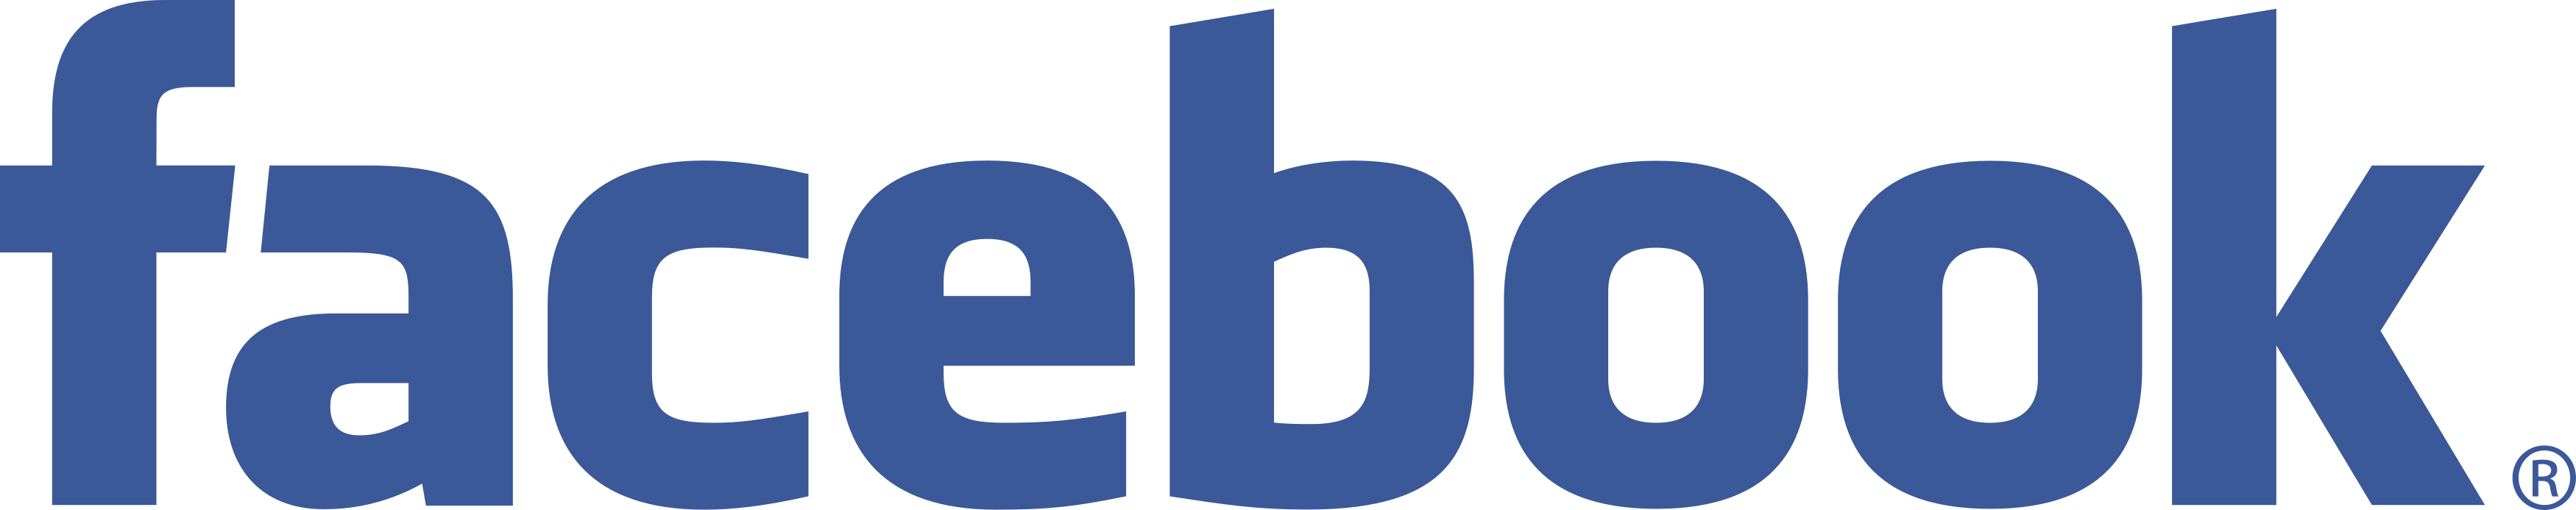 facbook-logo